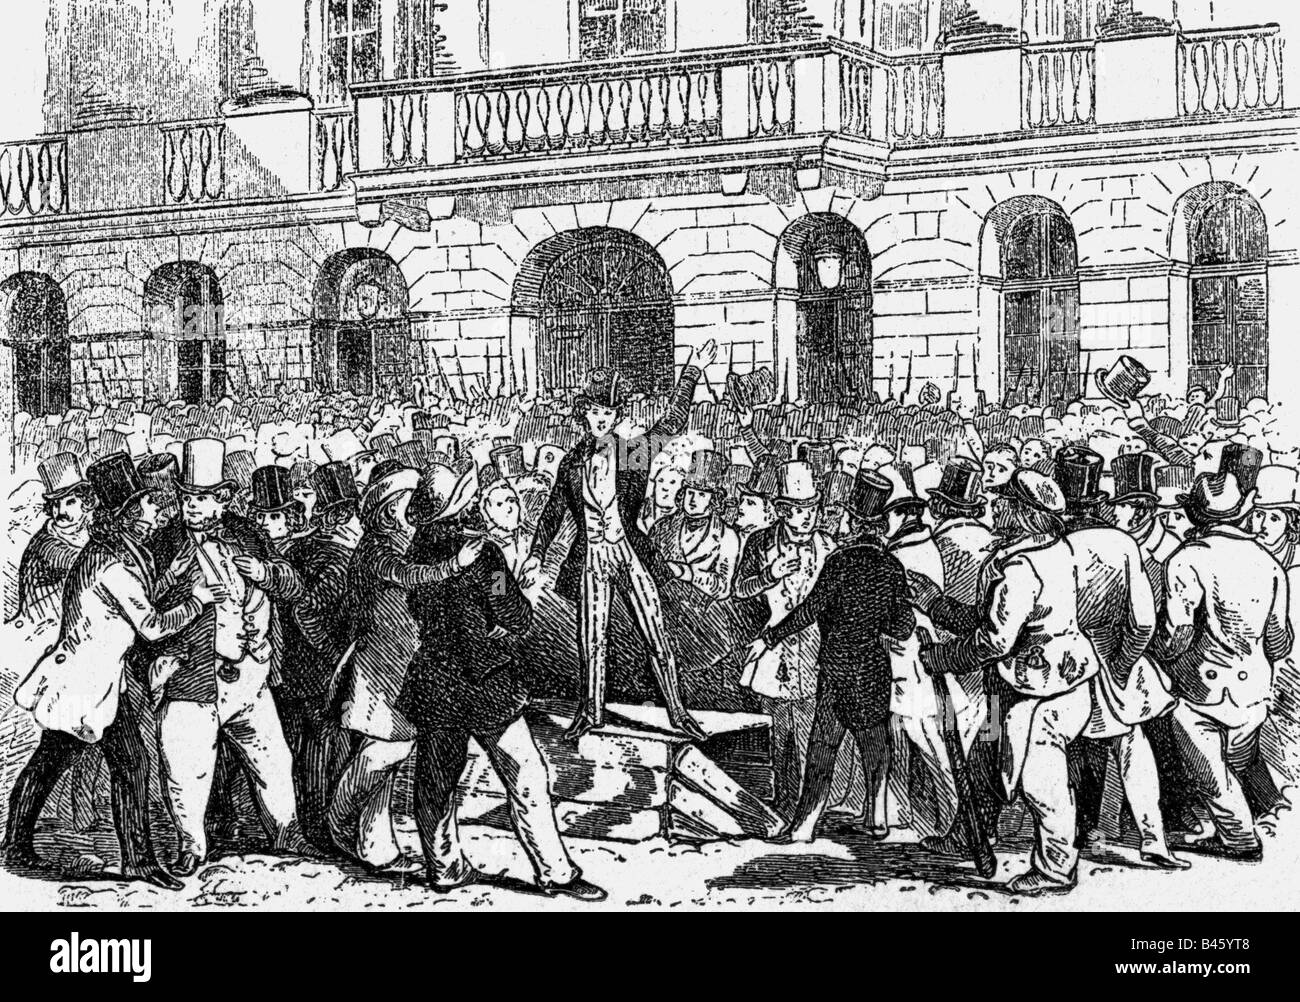 events, revolutions 1848 - 1849, Austria, March Revolution, orator in front of the Estates building, Vienna, 13.3.1848, - Stock Image